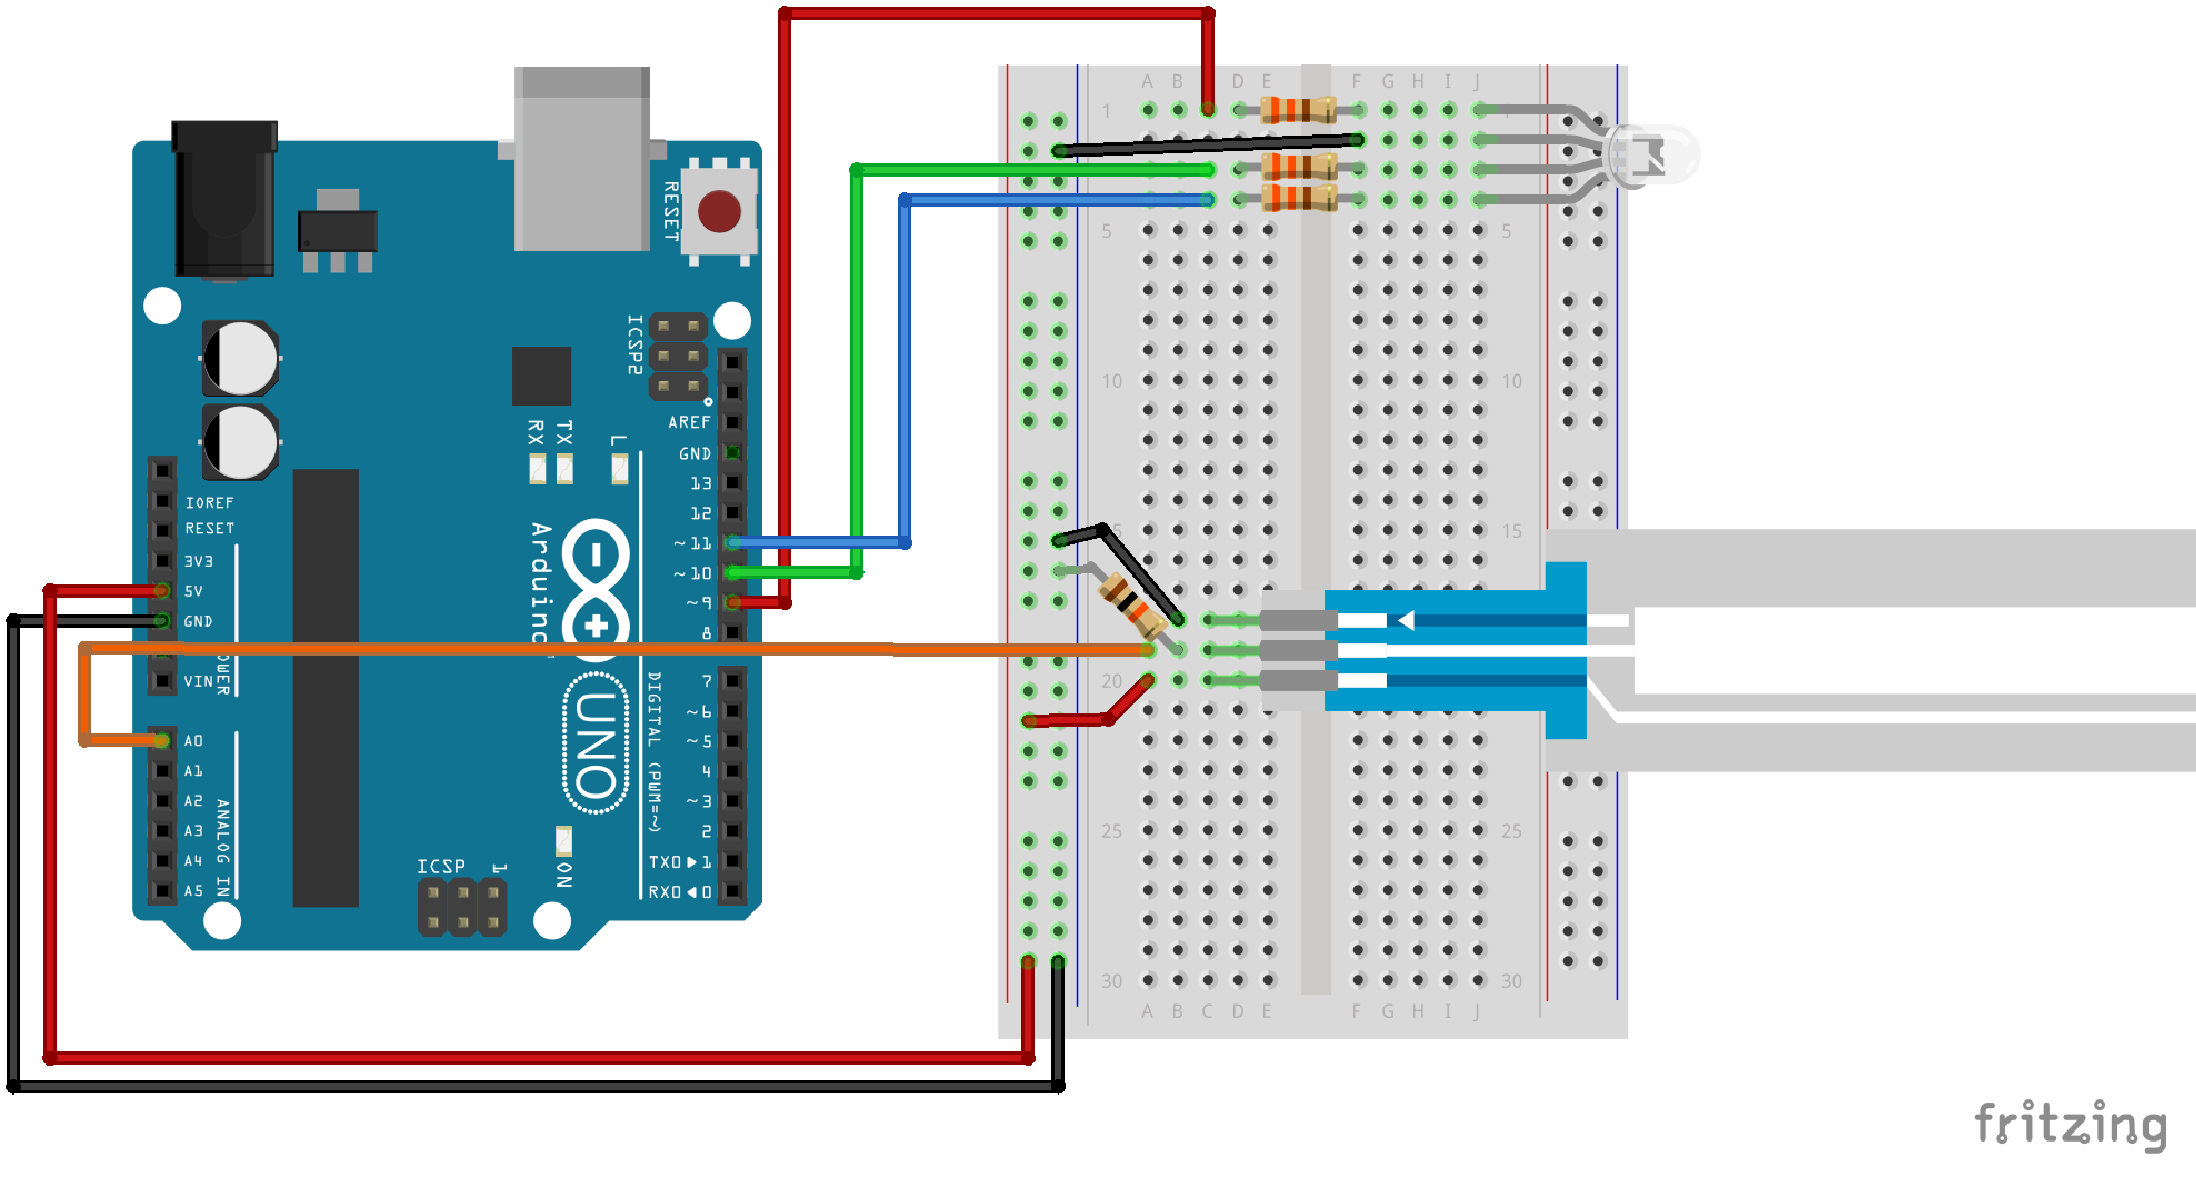 sik experiment guide for arduino v3 2 learn sparkfun comPotentiometer And Led Circuit #14